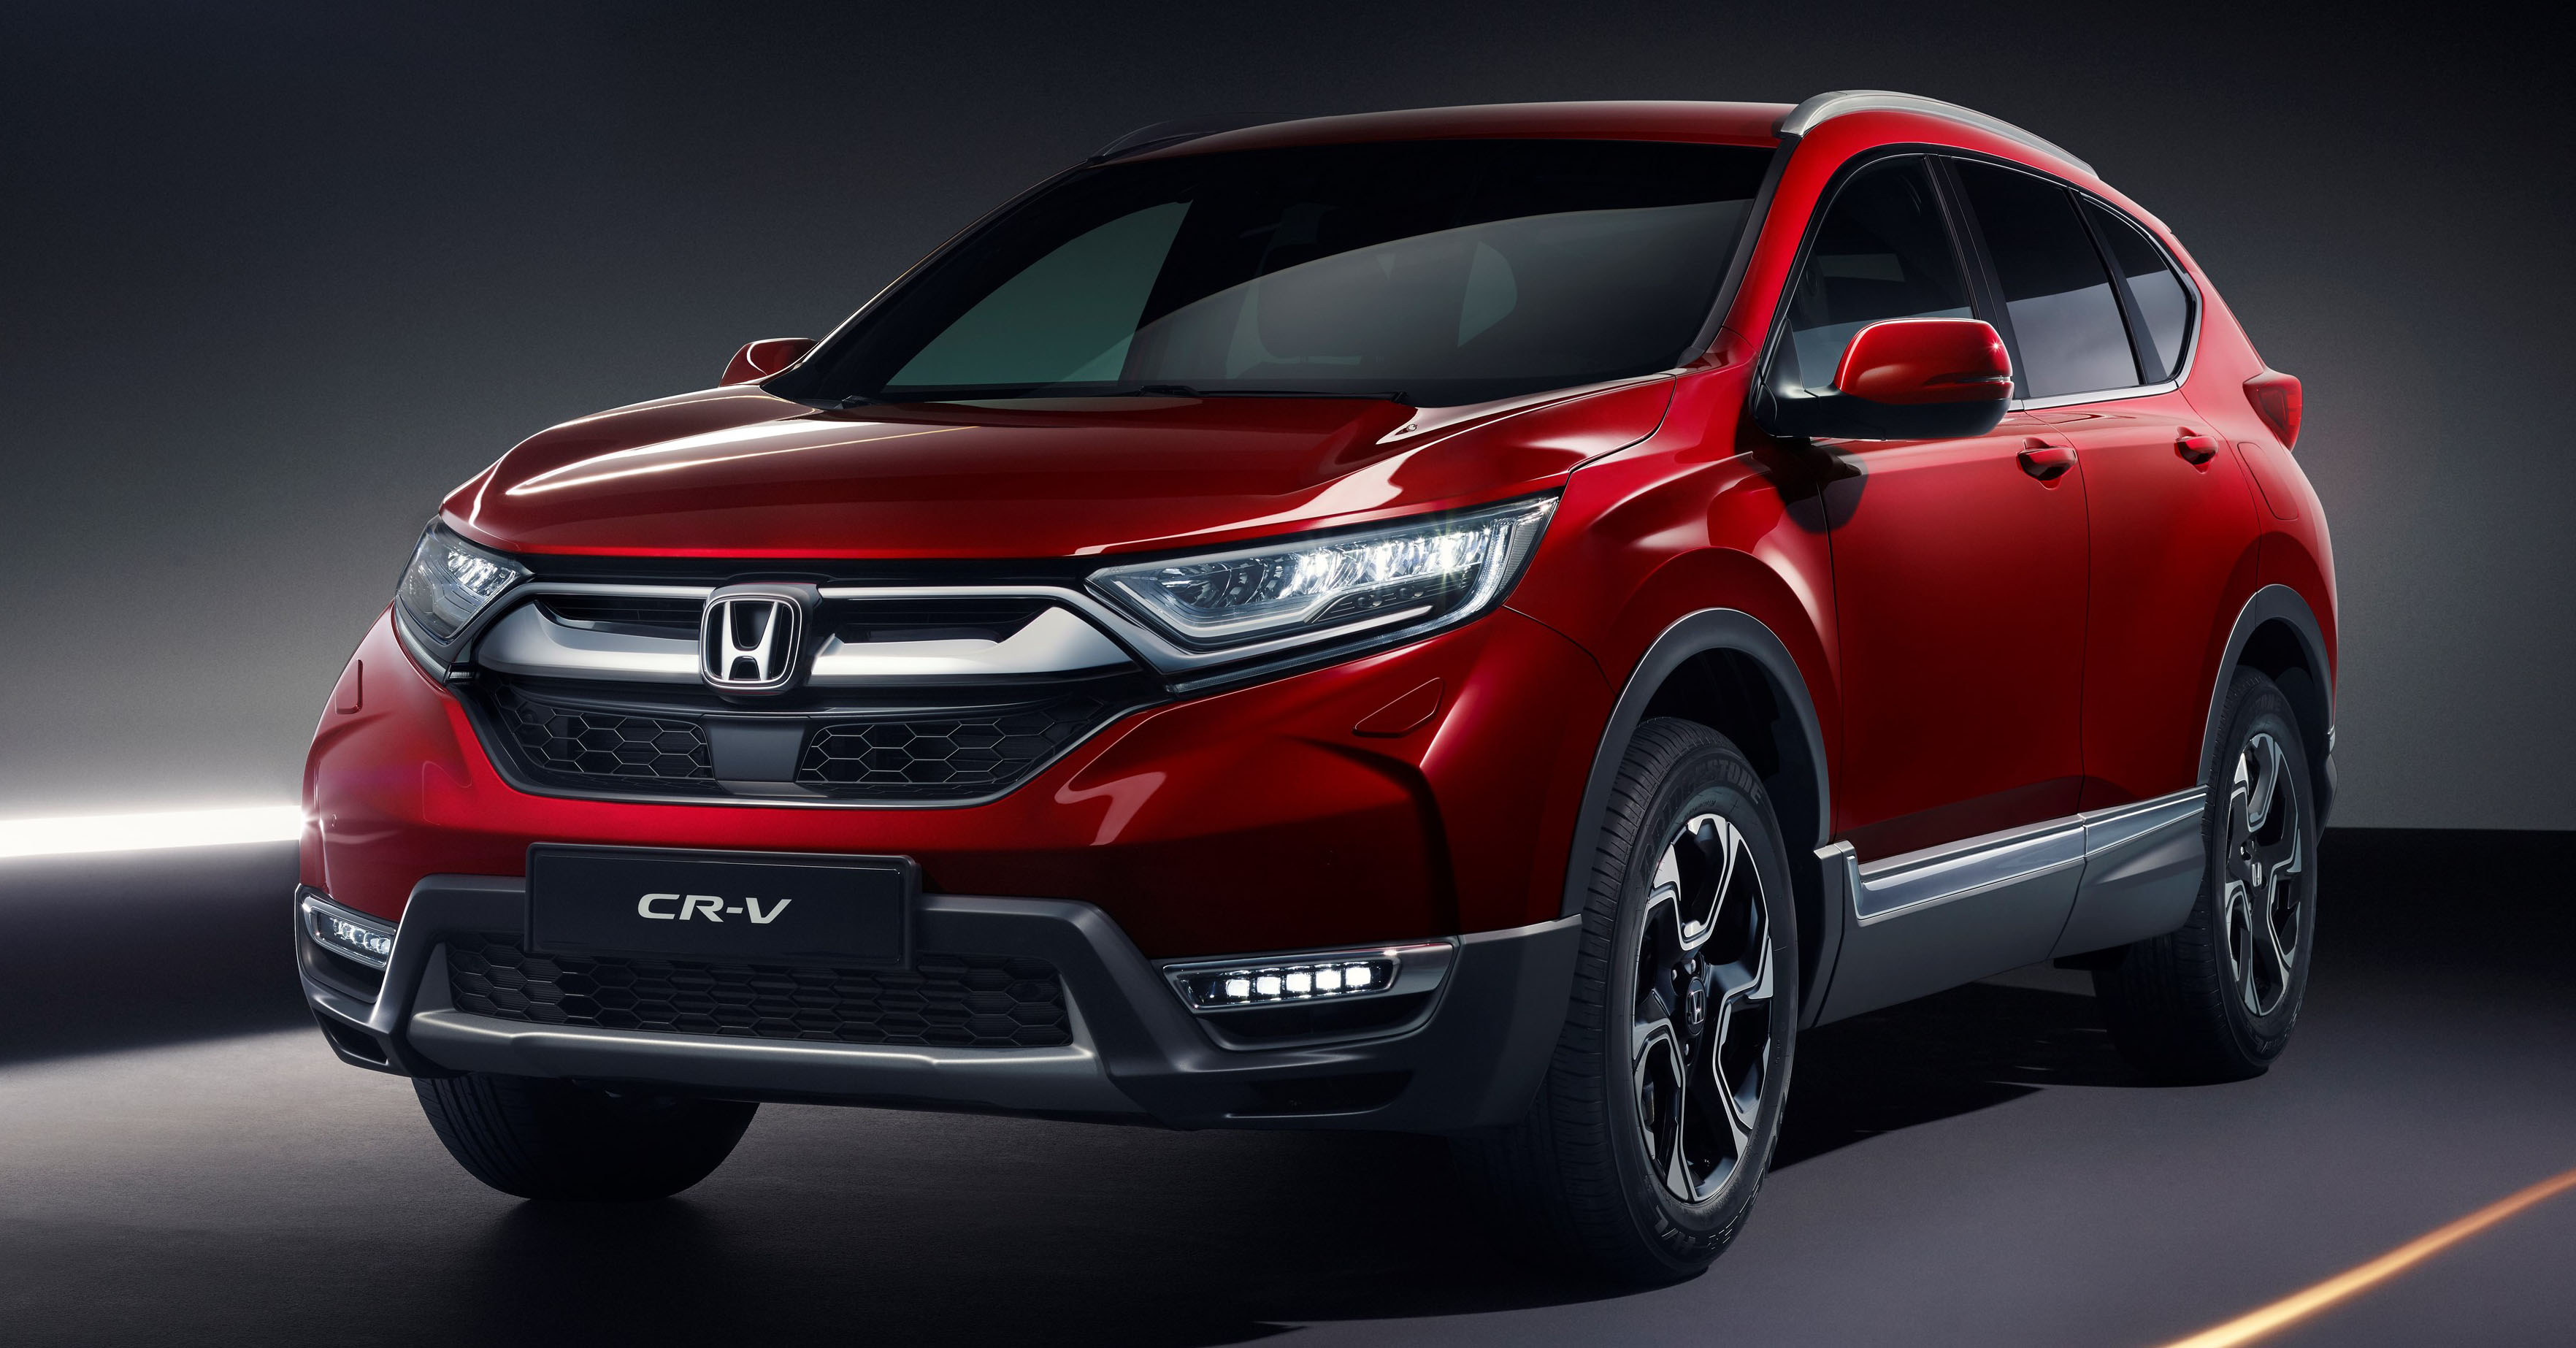 honda cr v for european markets revealed ahead of geneva show i mmd hybrid system 7 seat option. Black Bedroom Furniture Sets. Home Design Ideas